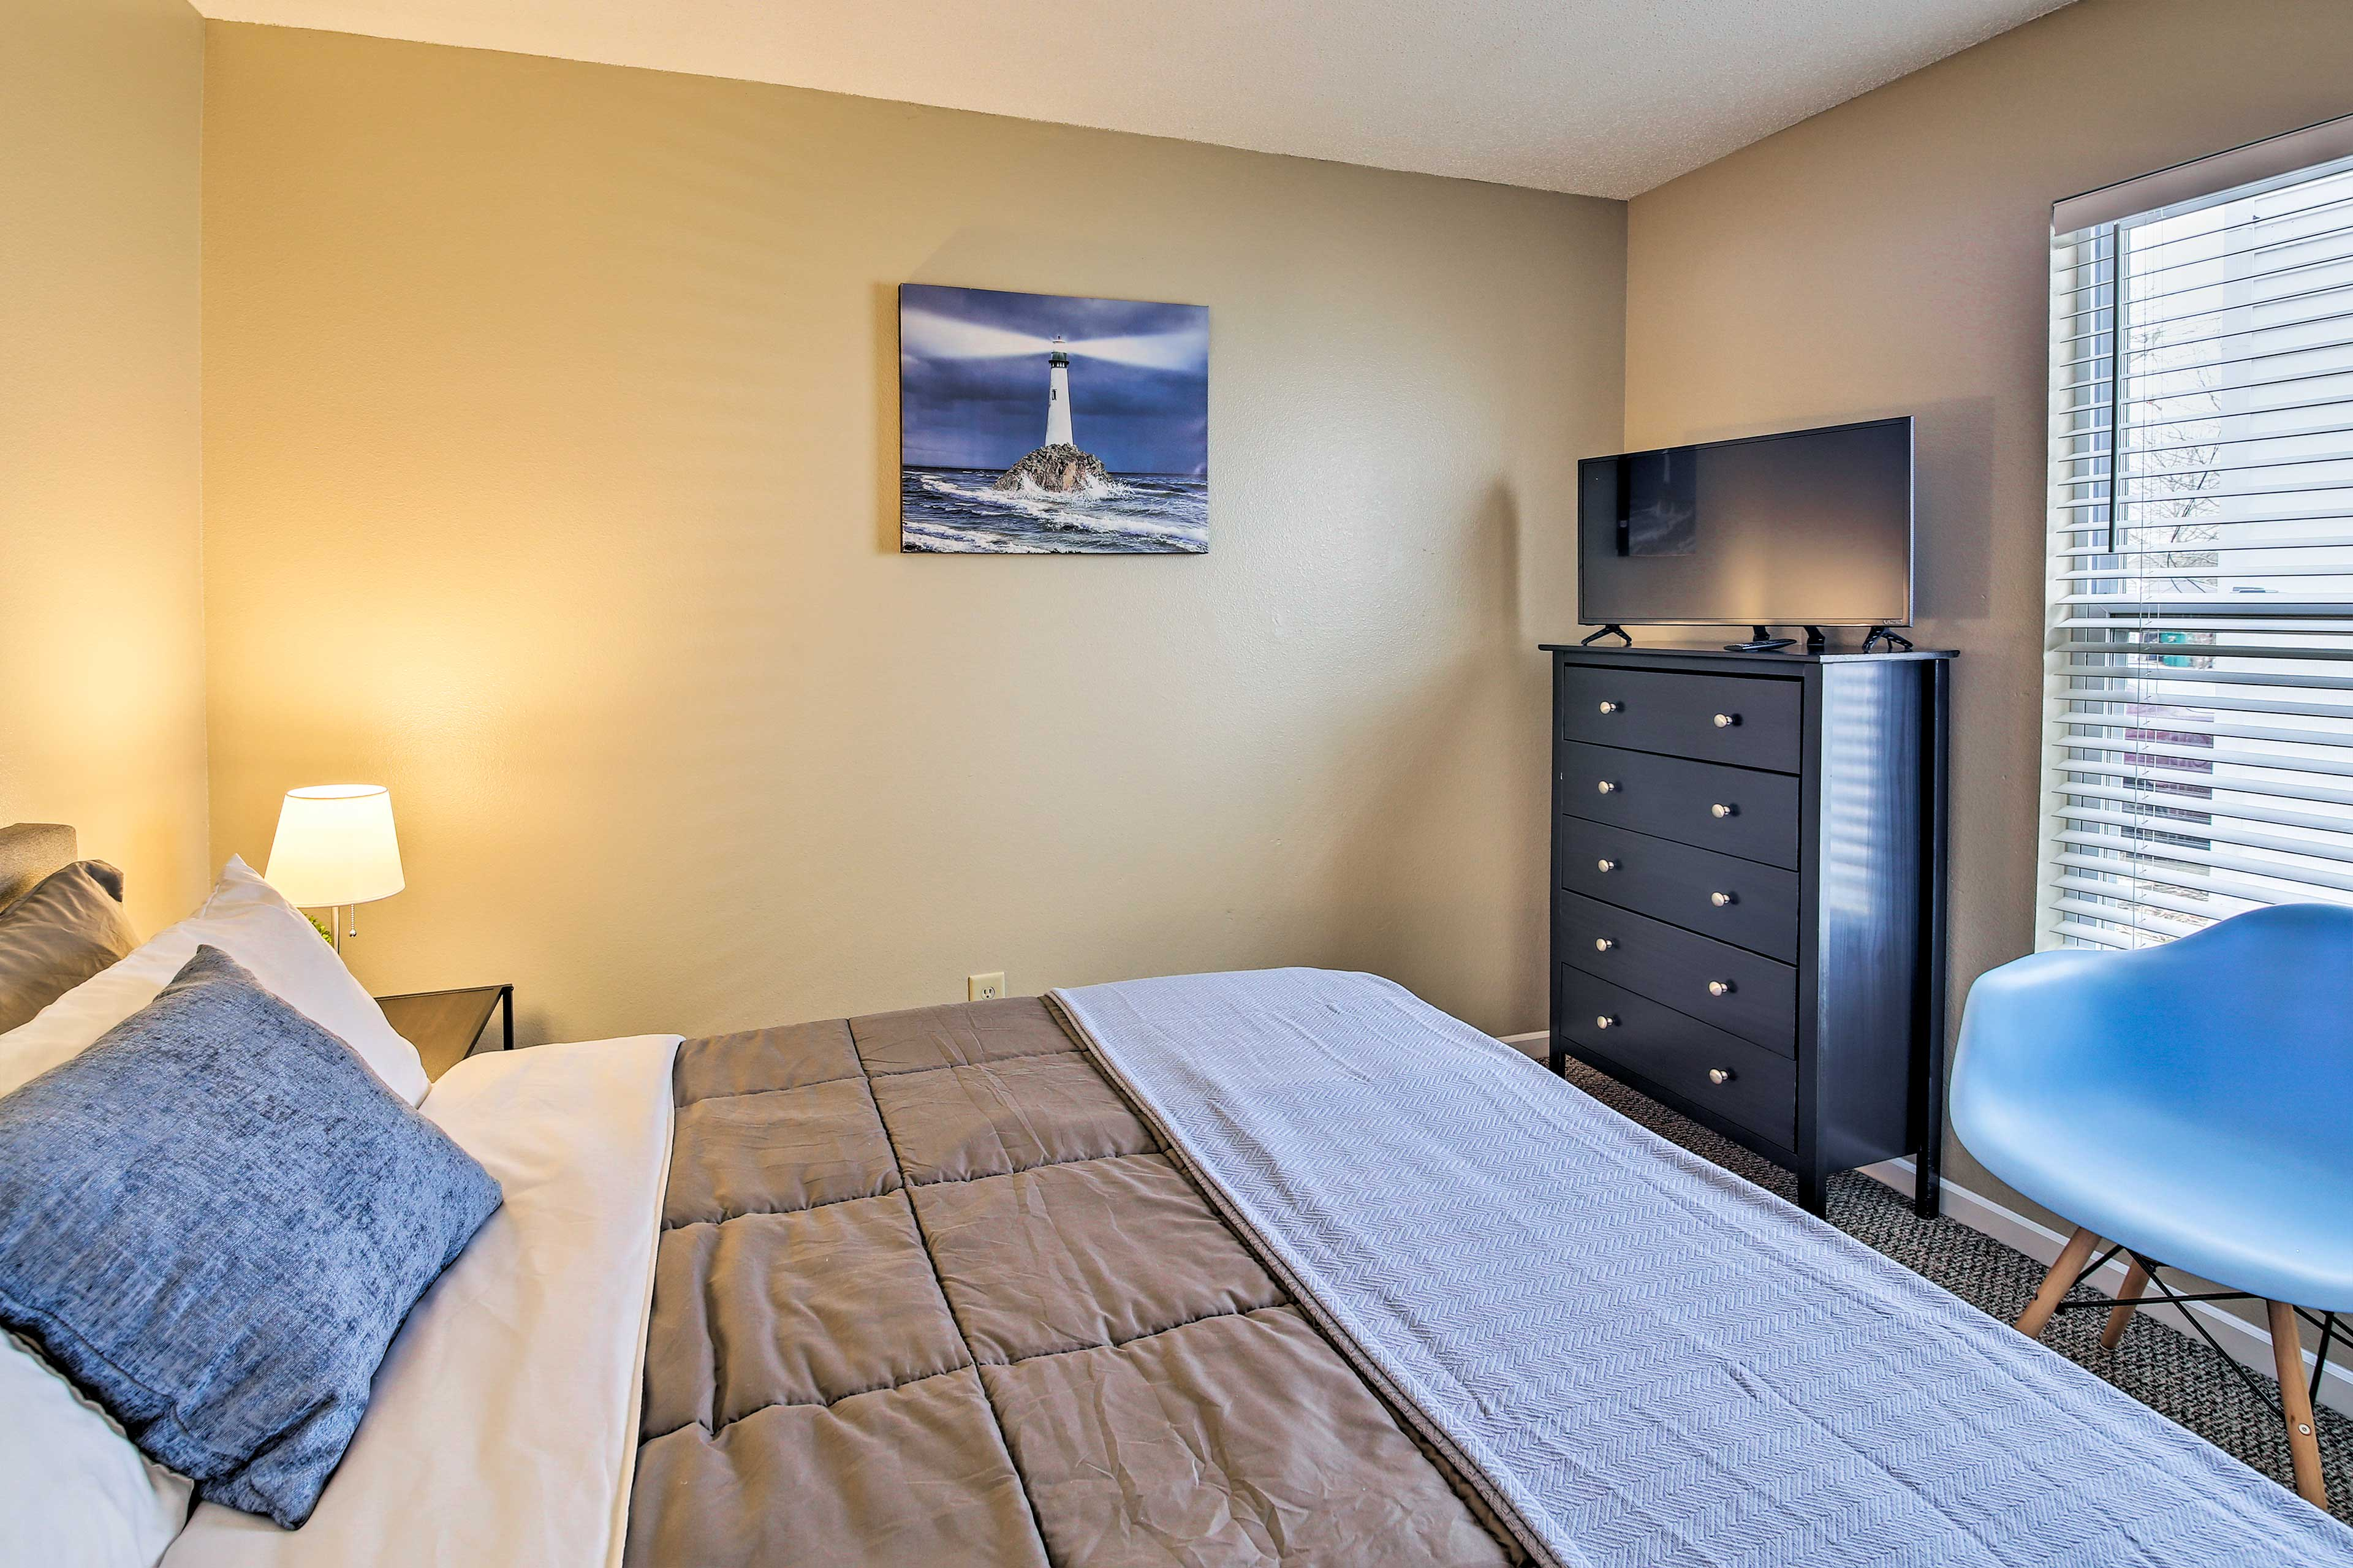 This room also features a flat-screen TV.